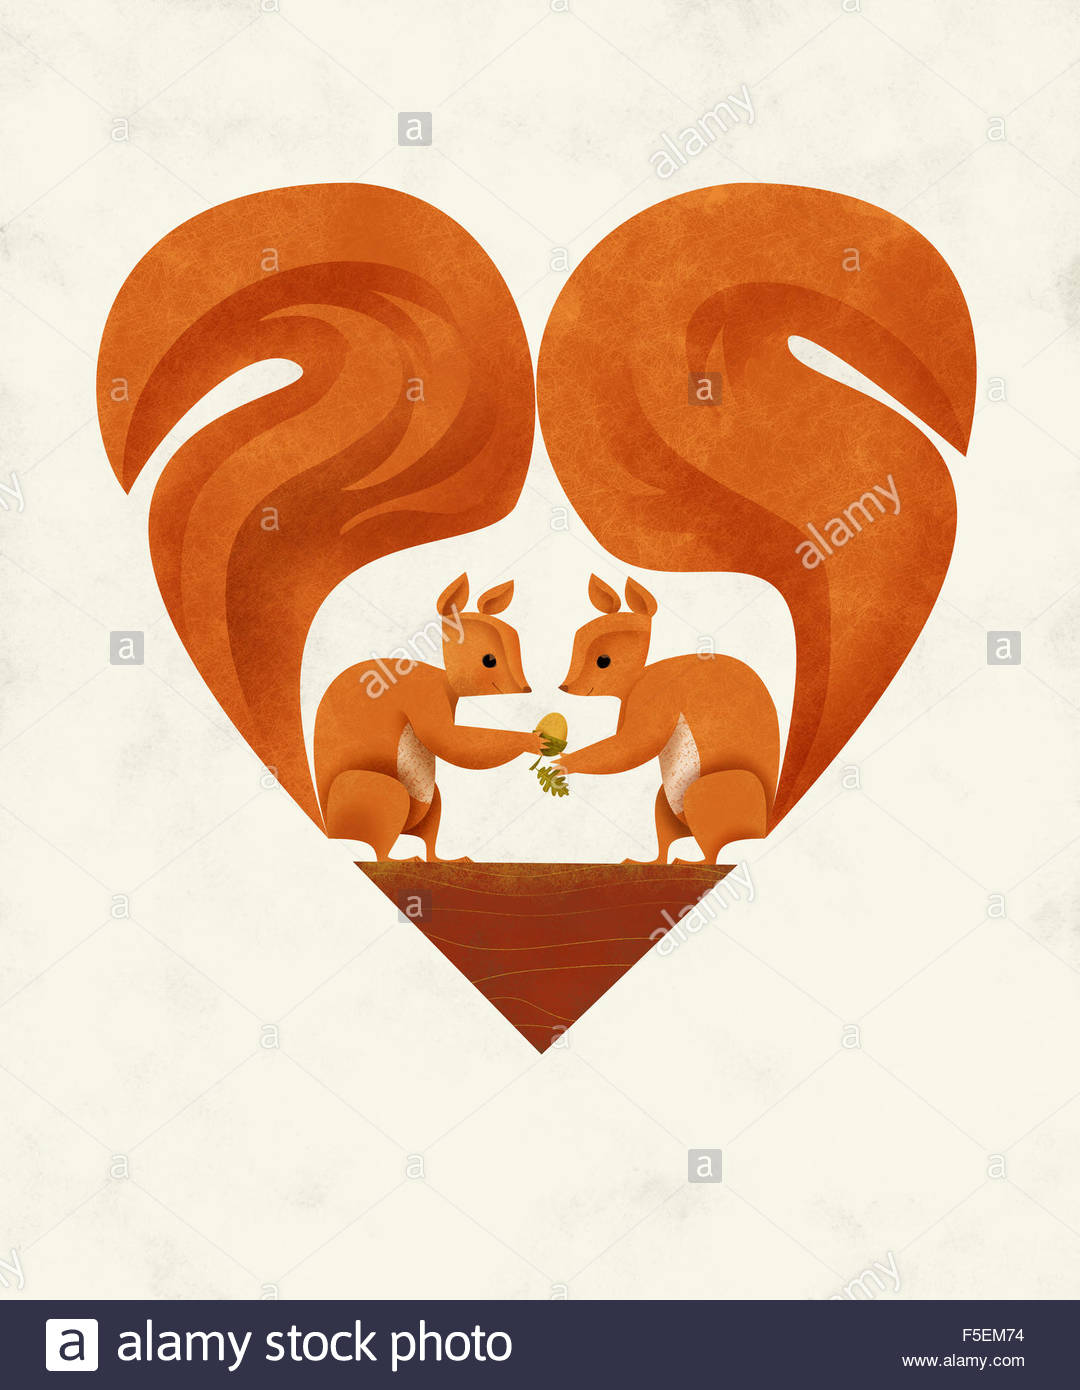 Two squirrels in love with tails forming heart shape - Stock Image